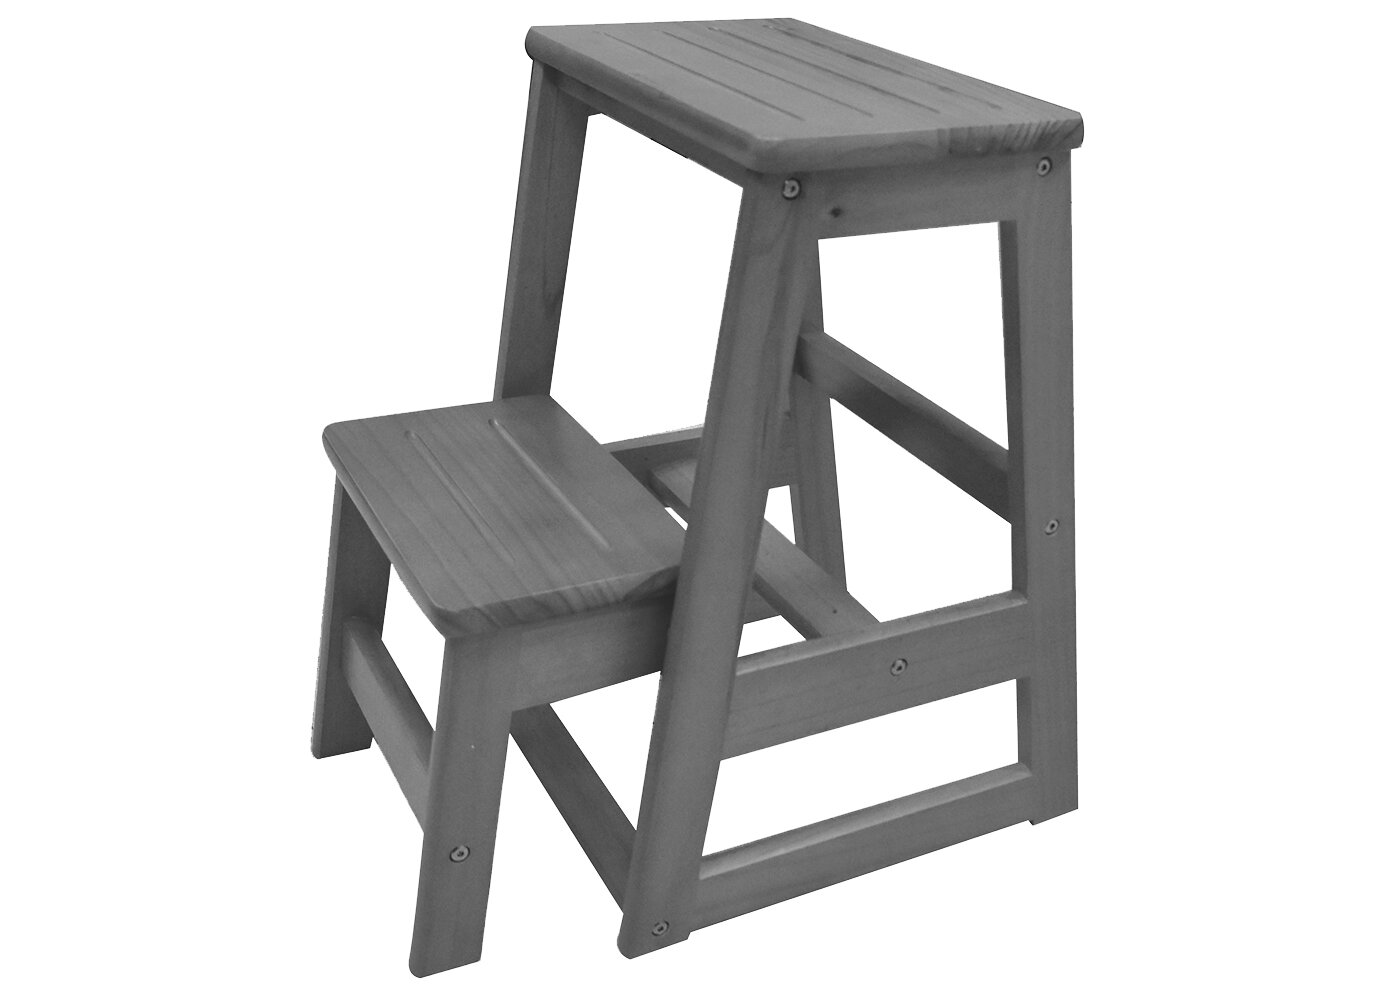 Stupendous Levi Folding 2 Step Wood Step Stool With 200 Lb Load Capacity Short Links Chair Design For Home Short Linksinfo